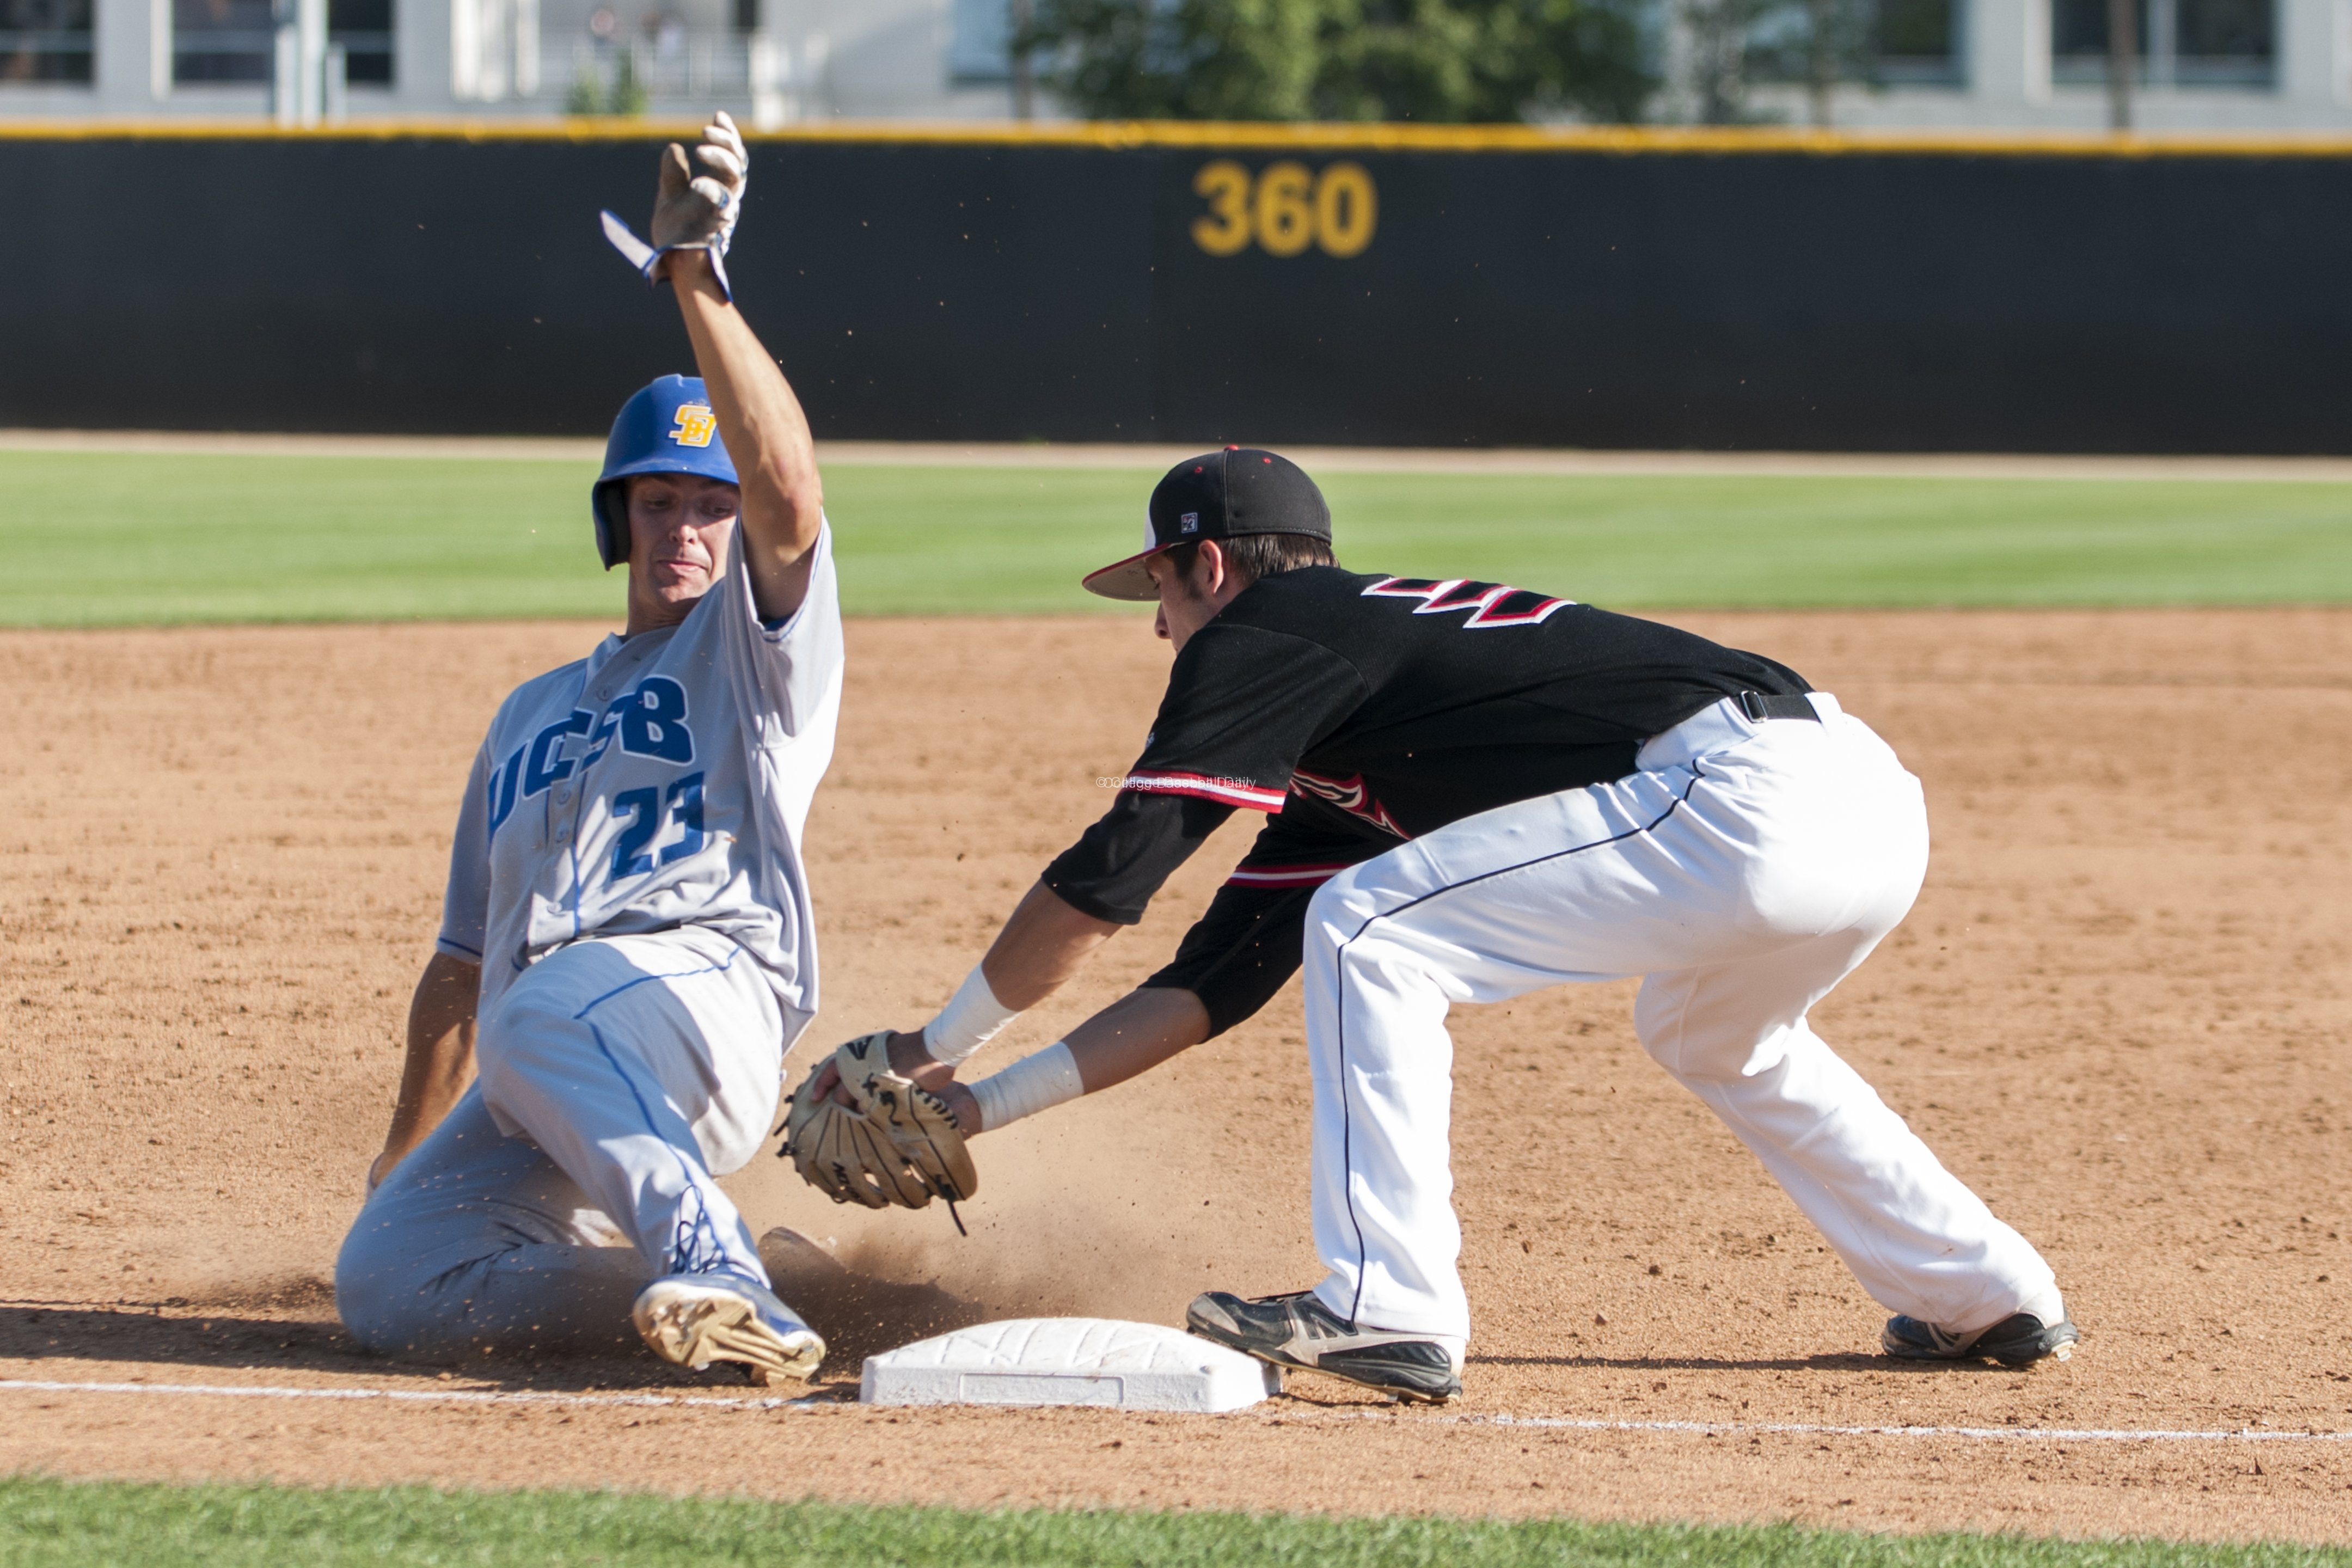 An Irvine runner is hosed.